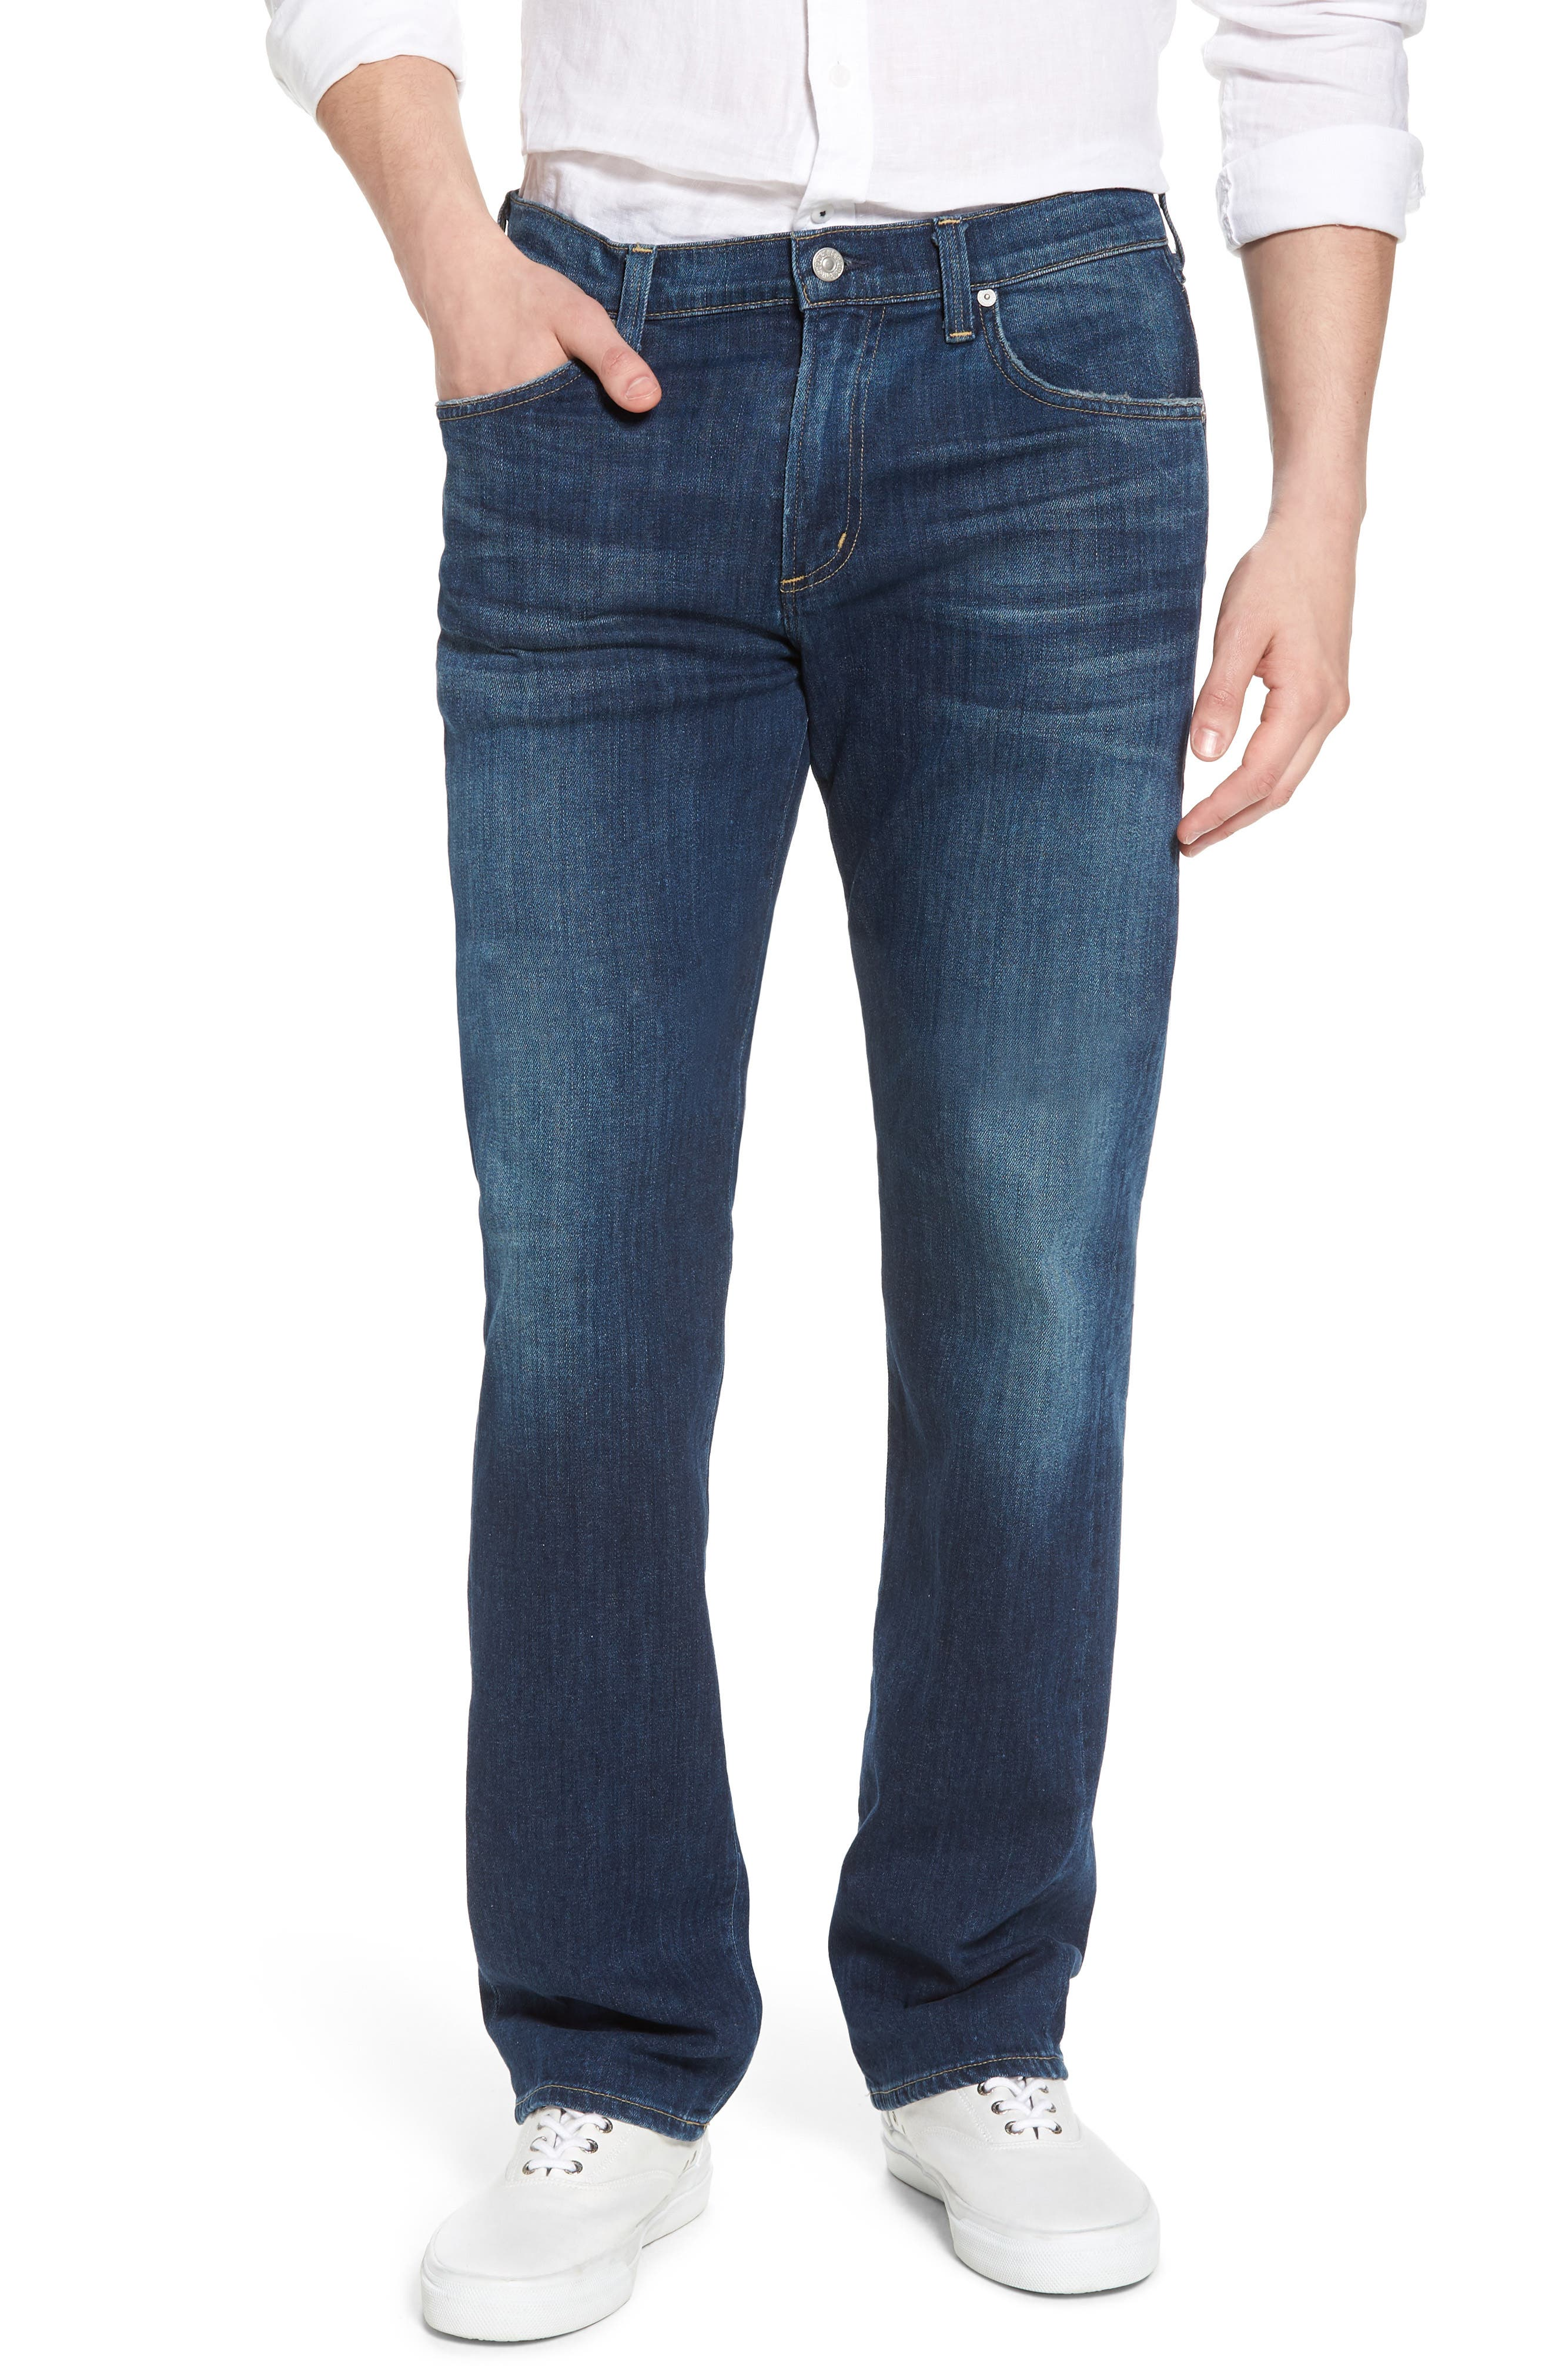 Sid Straight Leg Jeans,                         Main,                         color, 464